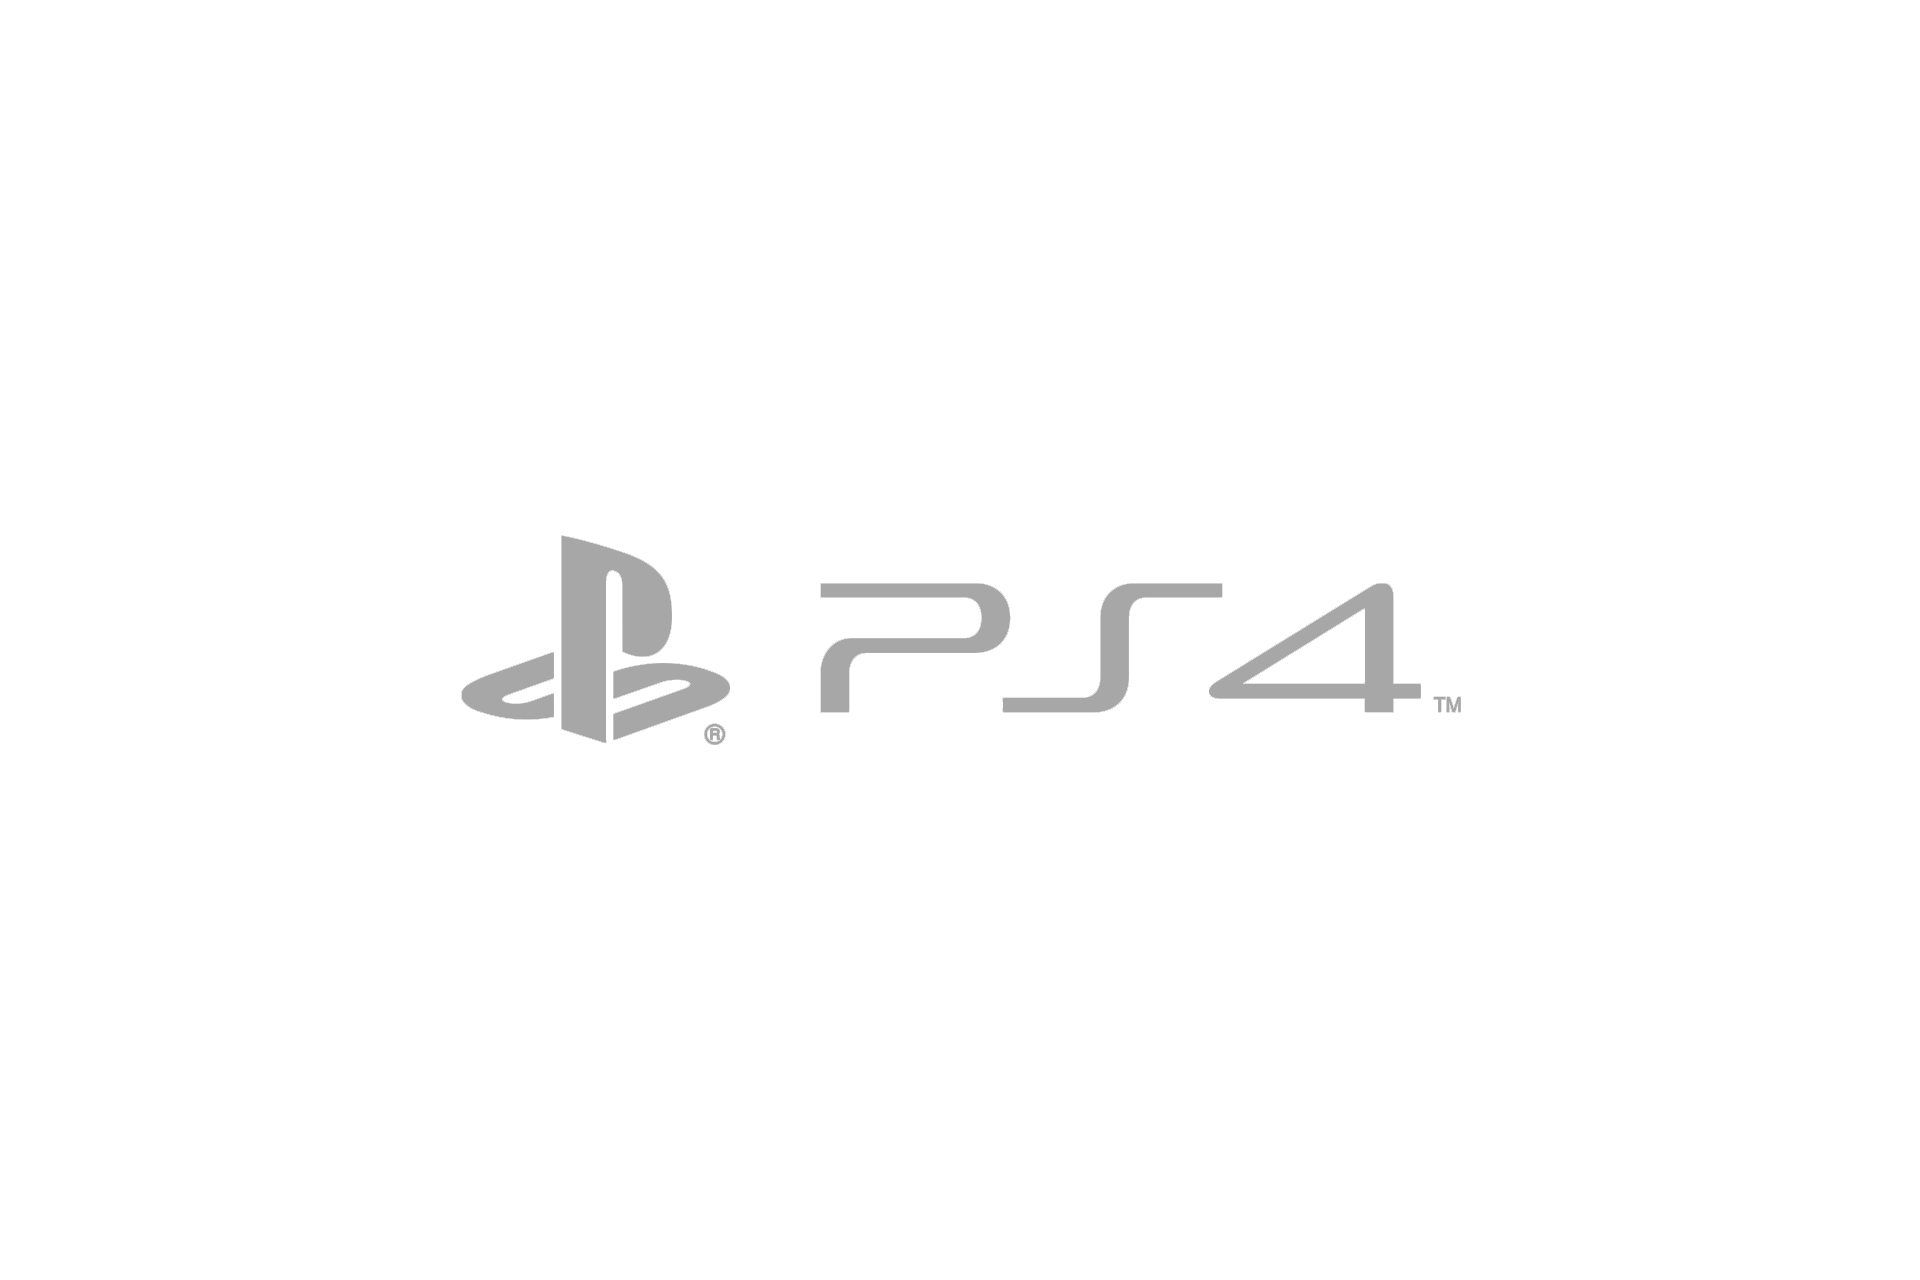 ps4 logo grey